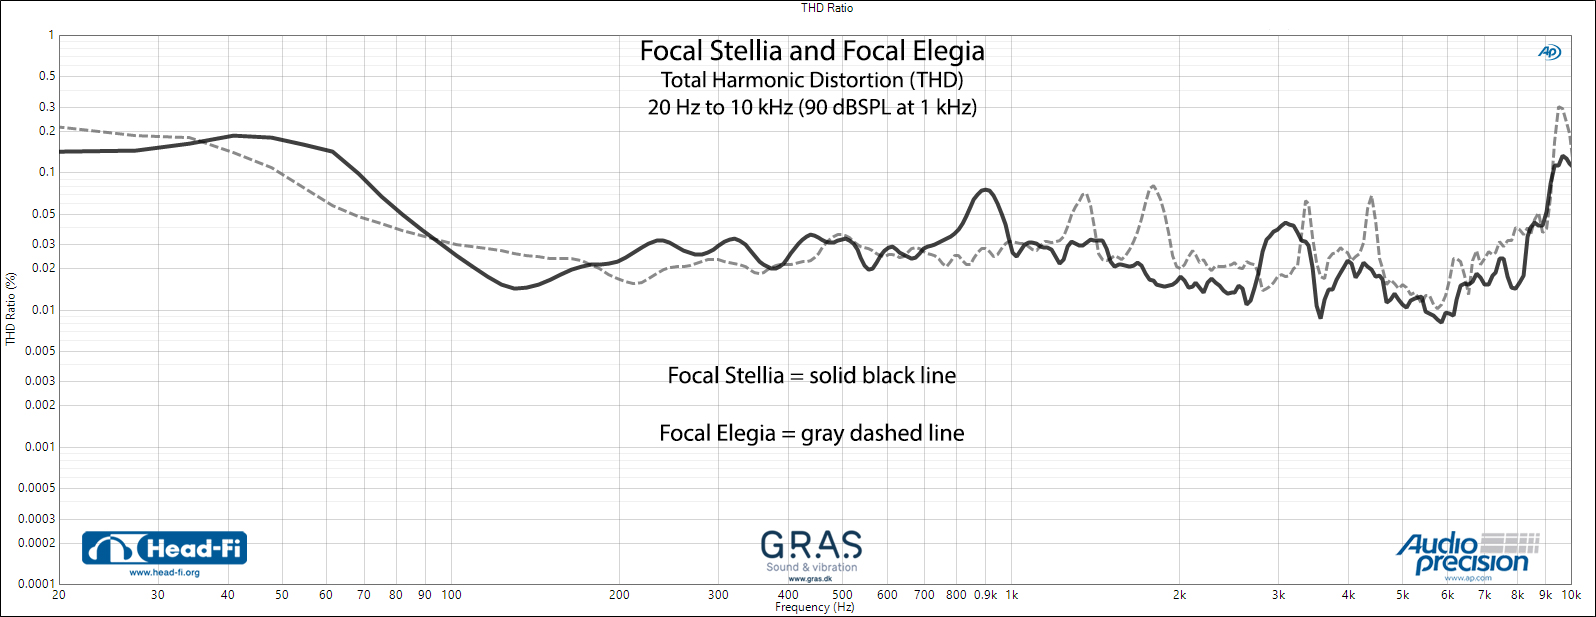 THD---Focal-Stellia-(black-solid)-v-Focal-Elegia-(gray-dashed).jpg